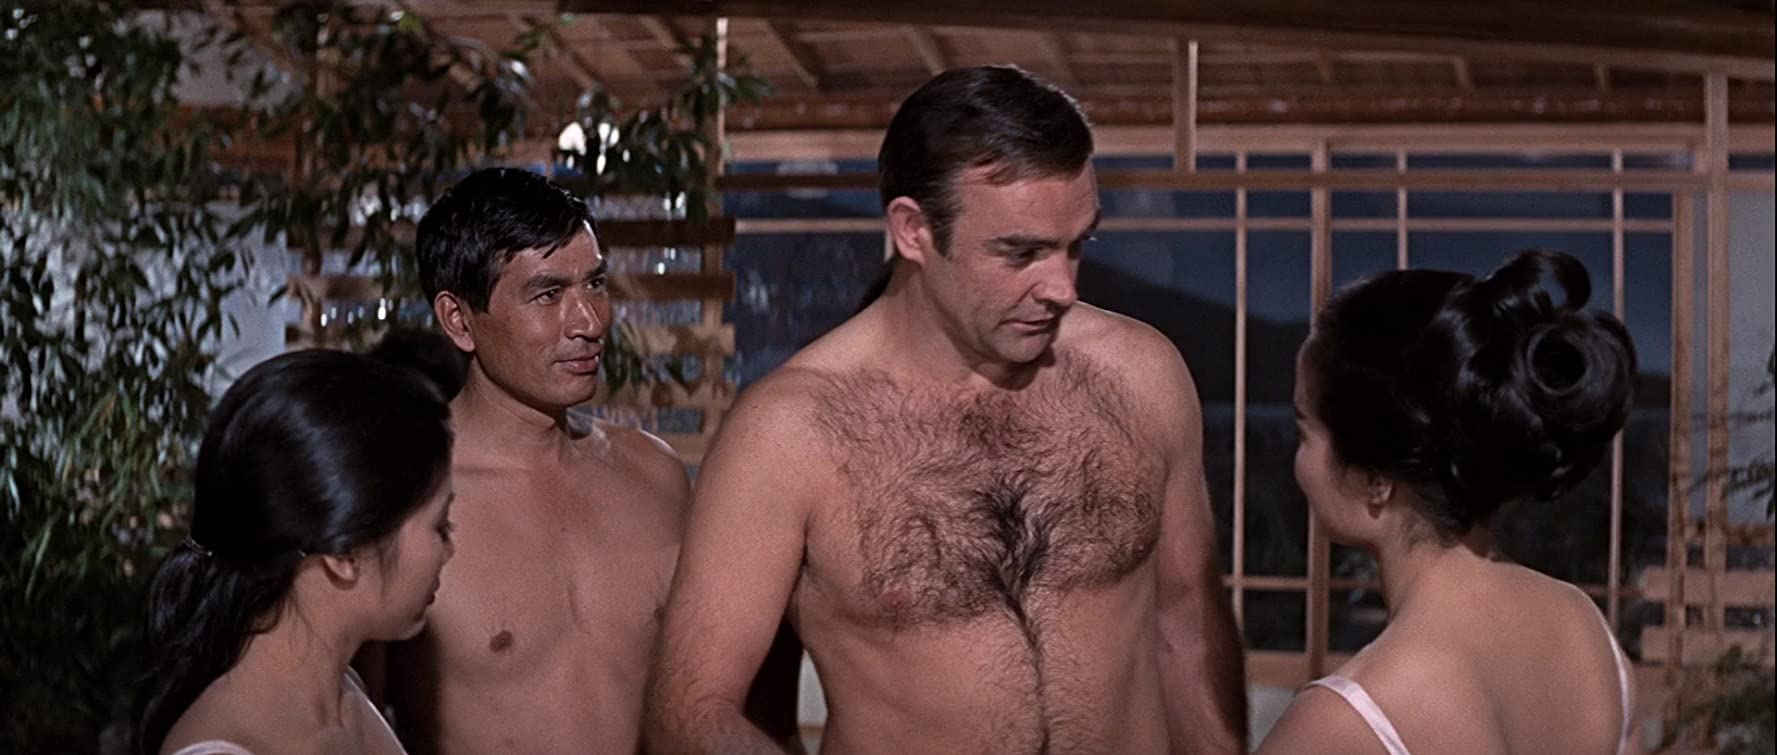 Sean Connery and Tetsurô Tanba in You Only Live Twice (1967)